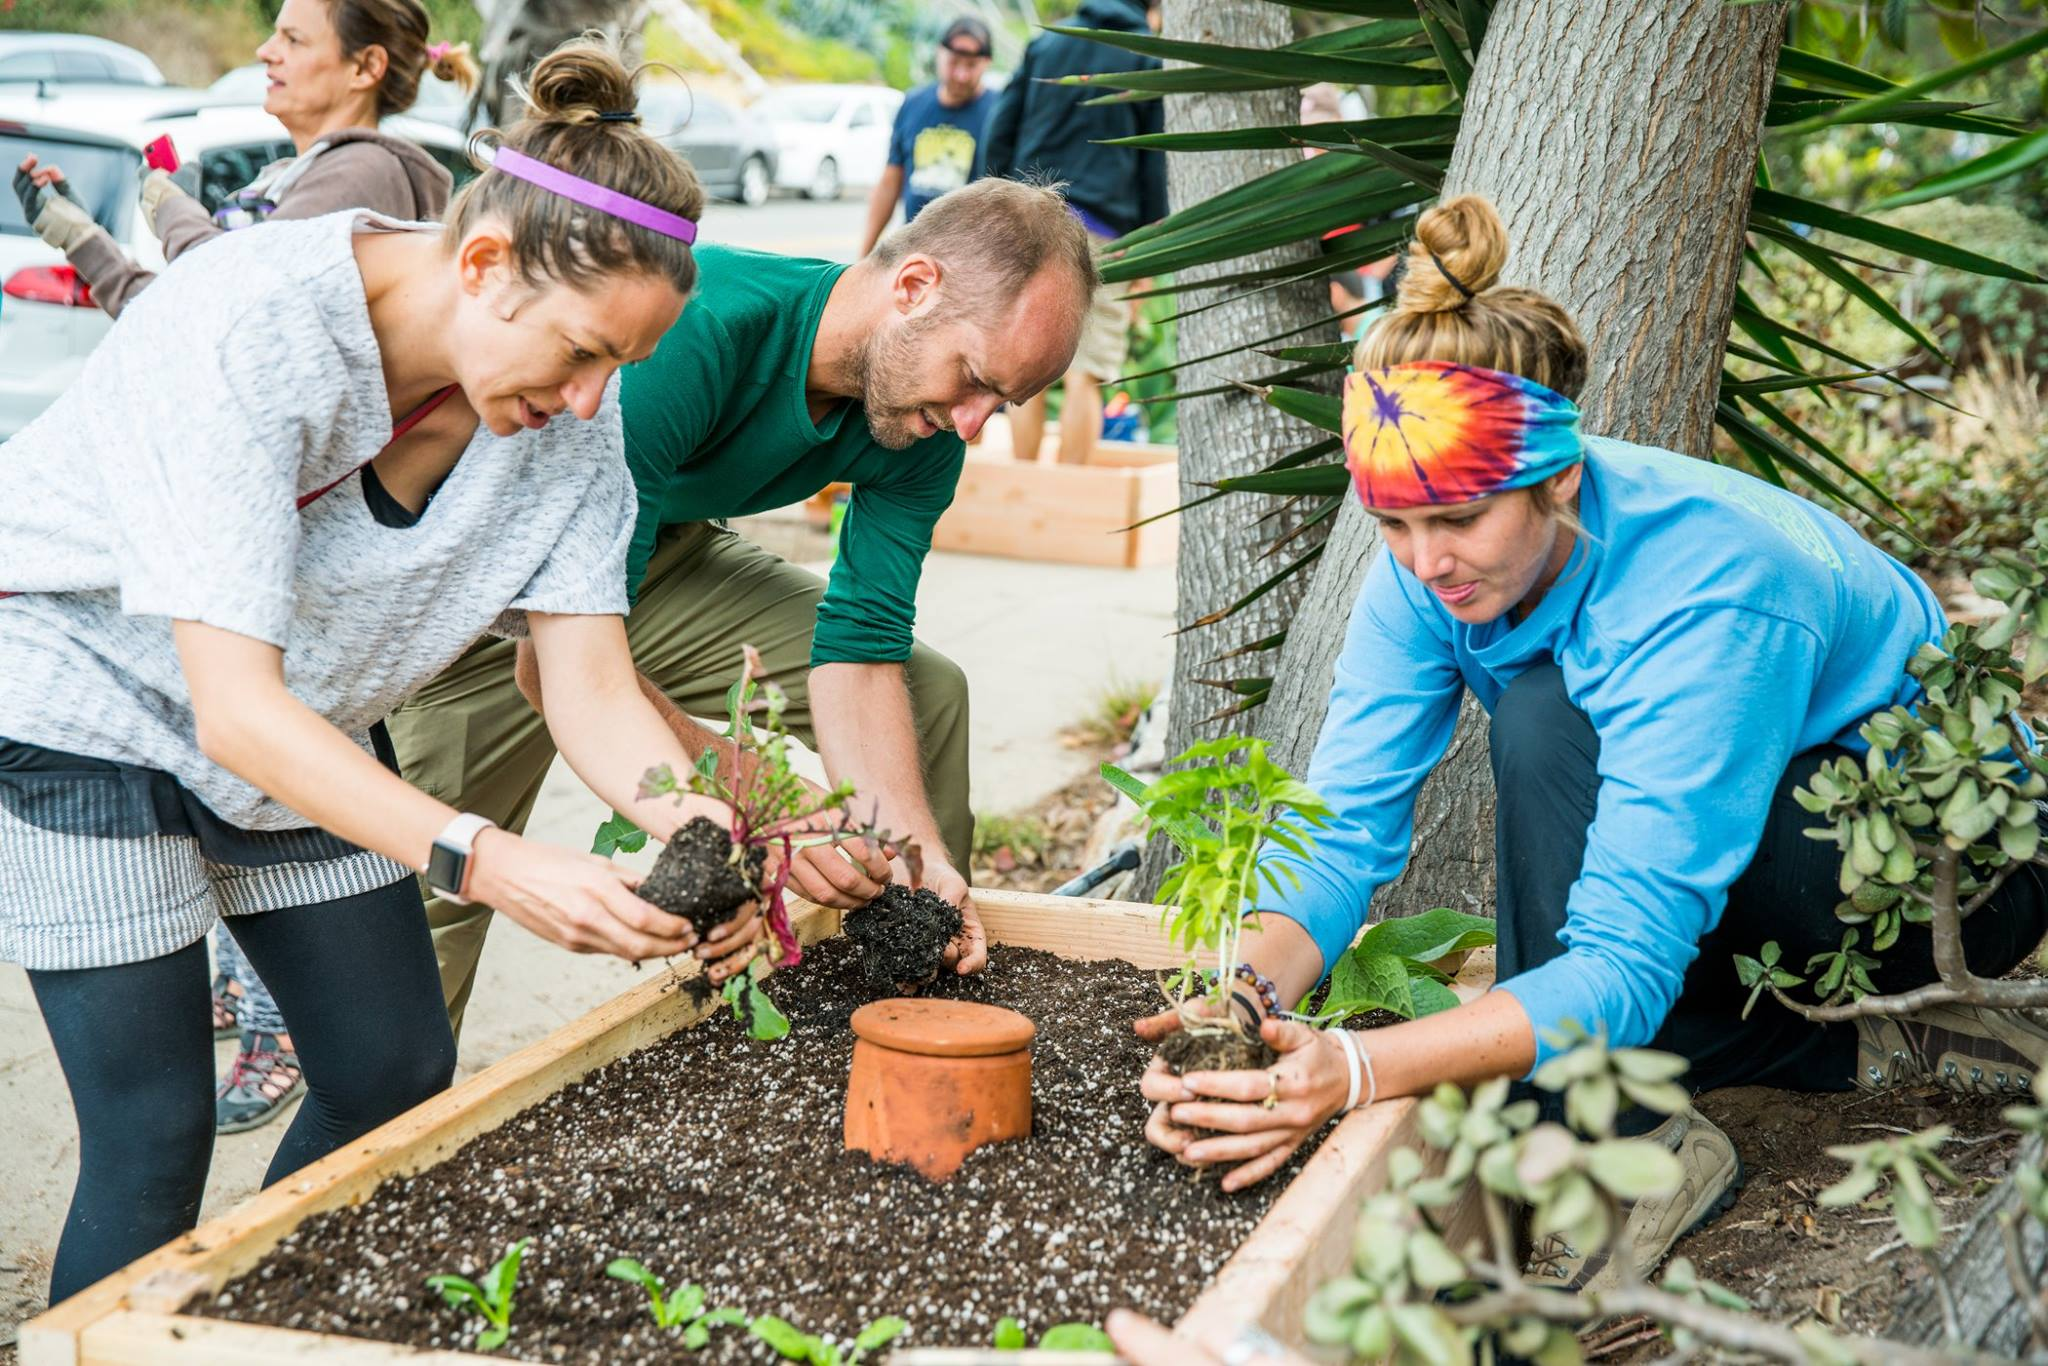 Rob Greenfield and friends work to plant a Little Free Garden during a build event in San Diego, California in the fall of 2017. Photo credit: Drew McGill